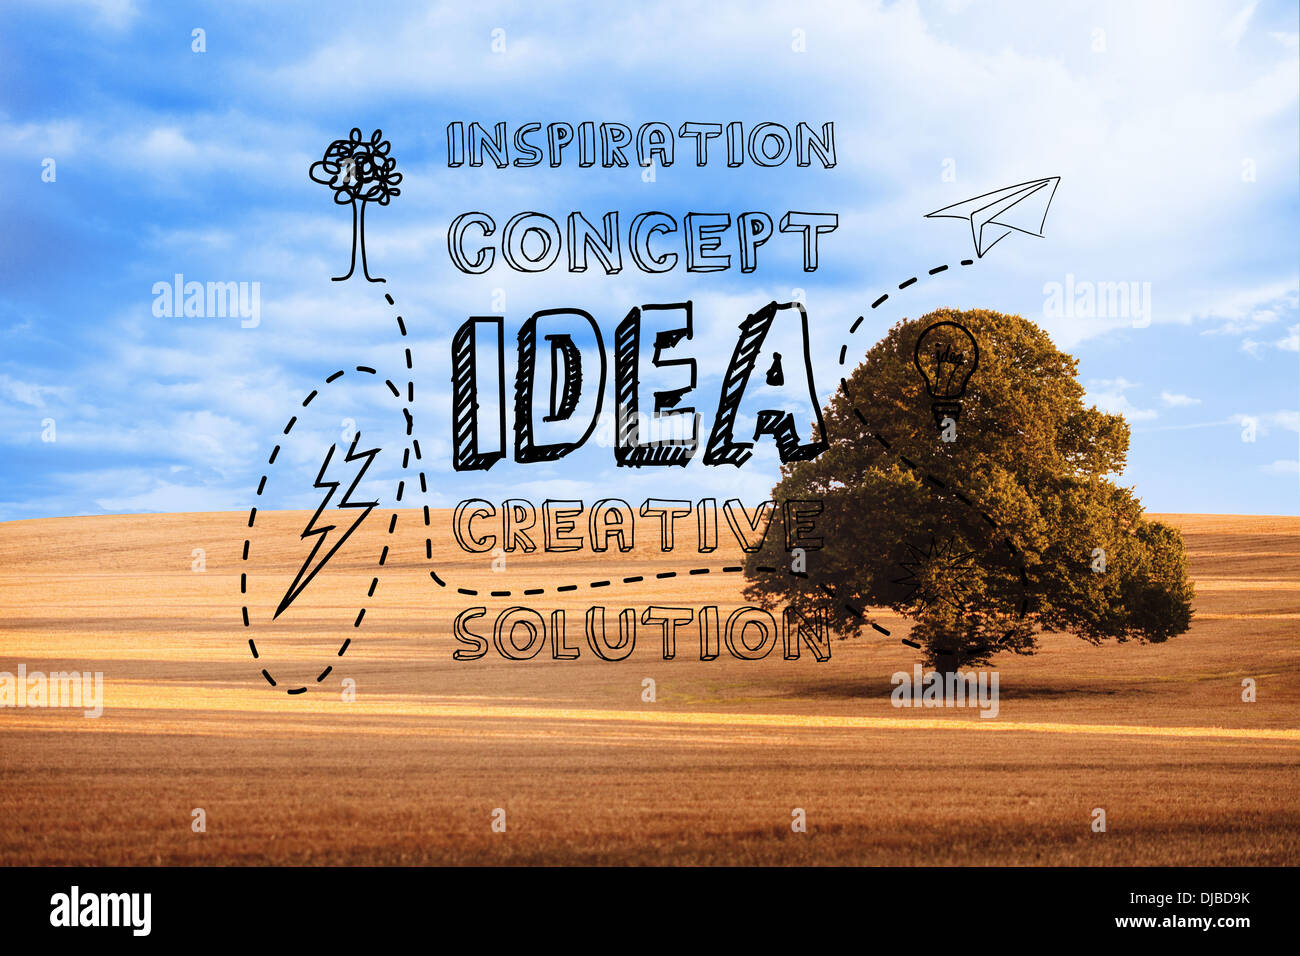 Idea graphic over countryside - Stock Image